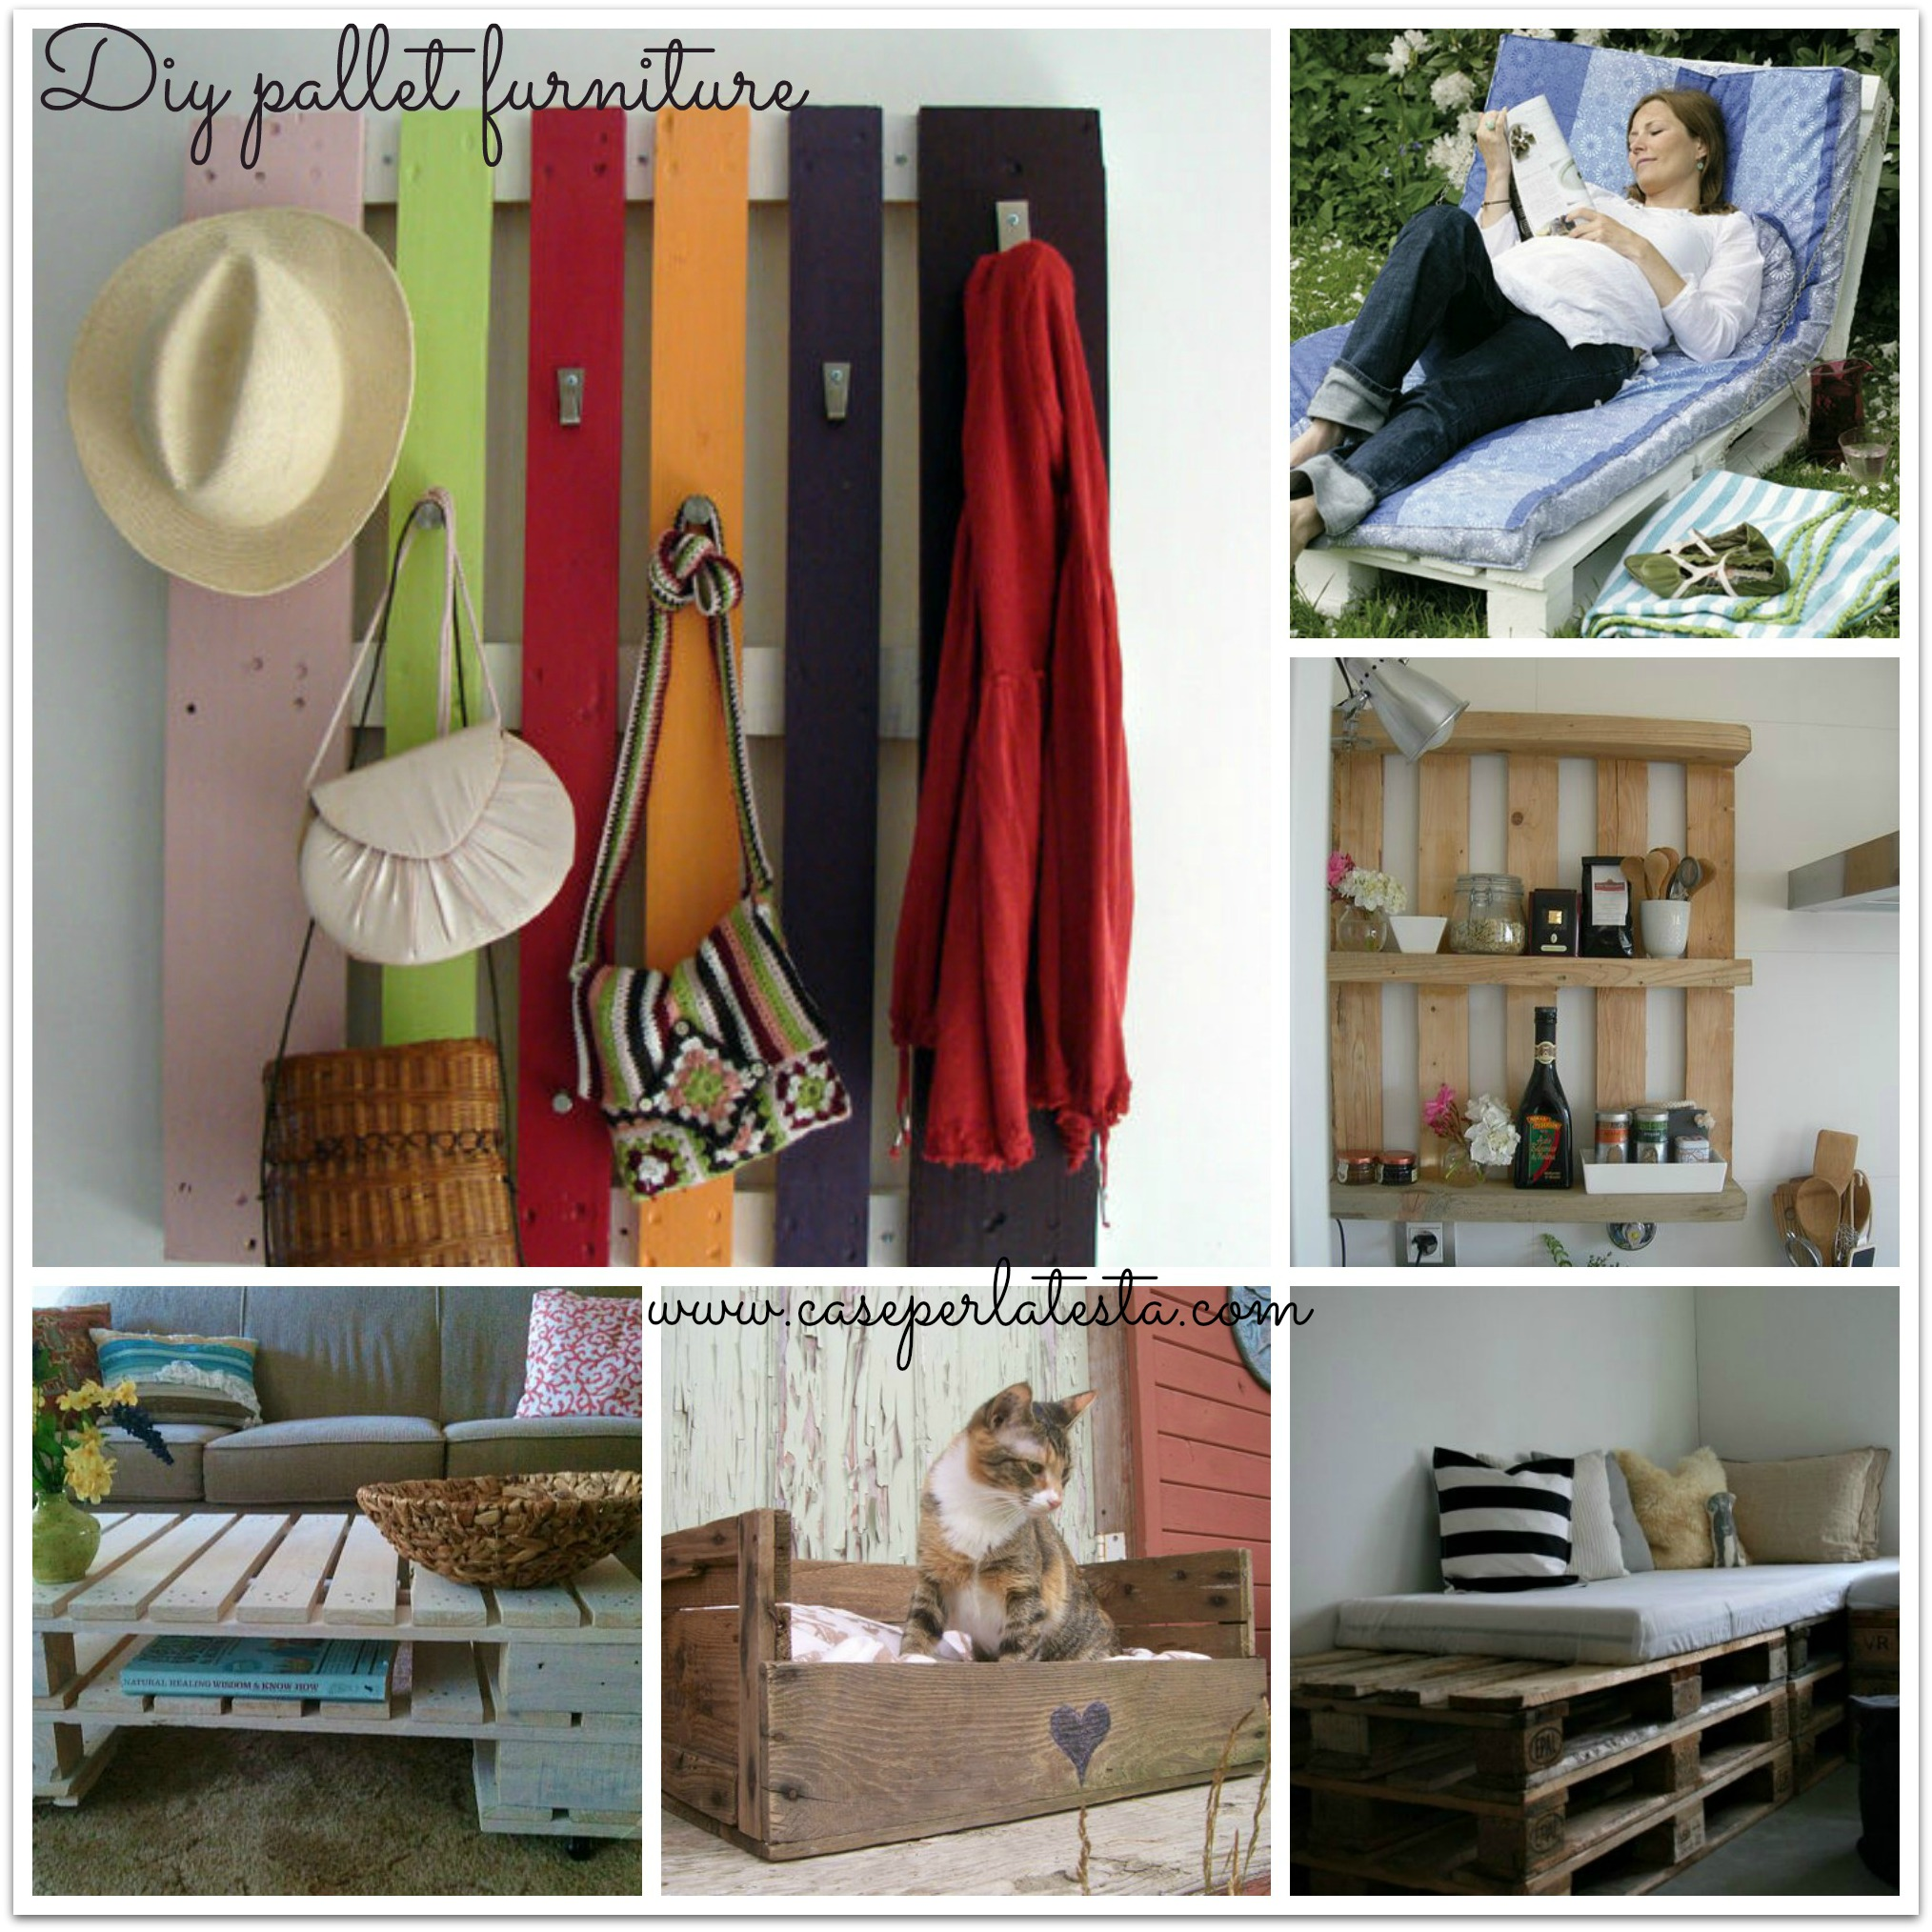 Arredo con pallets di legno * DIY pallets furniture